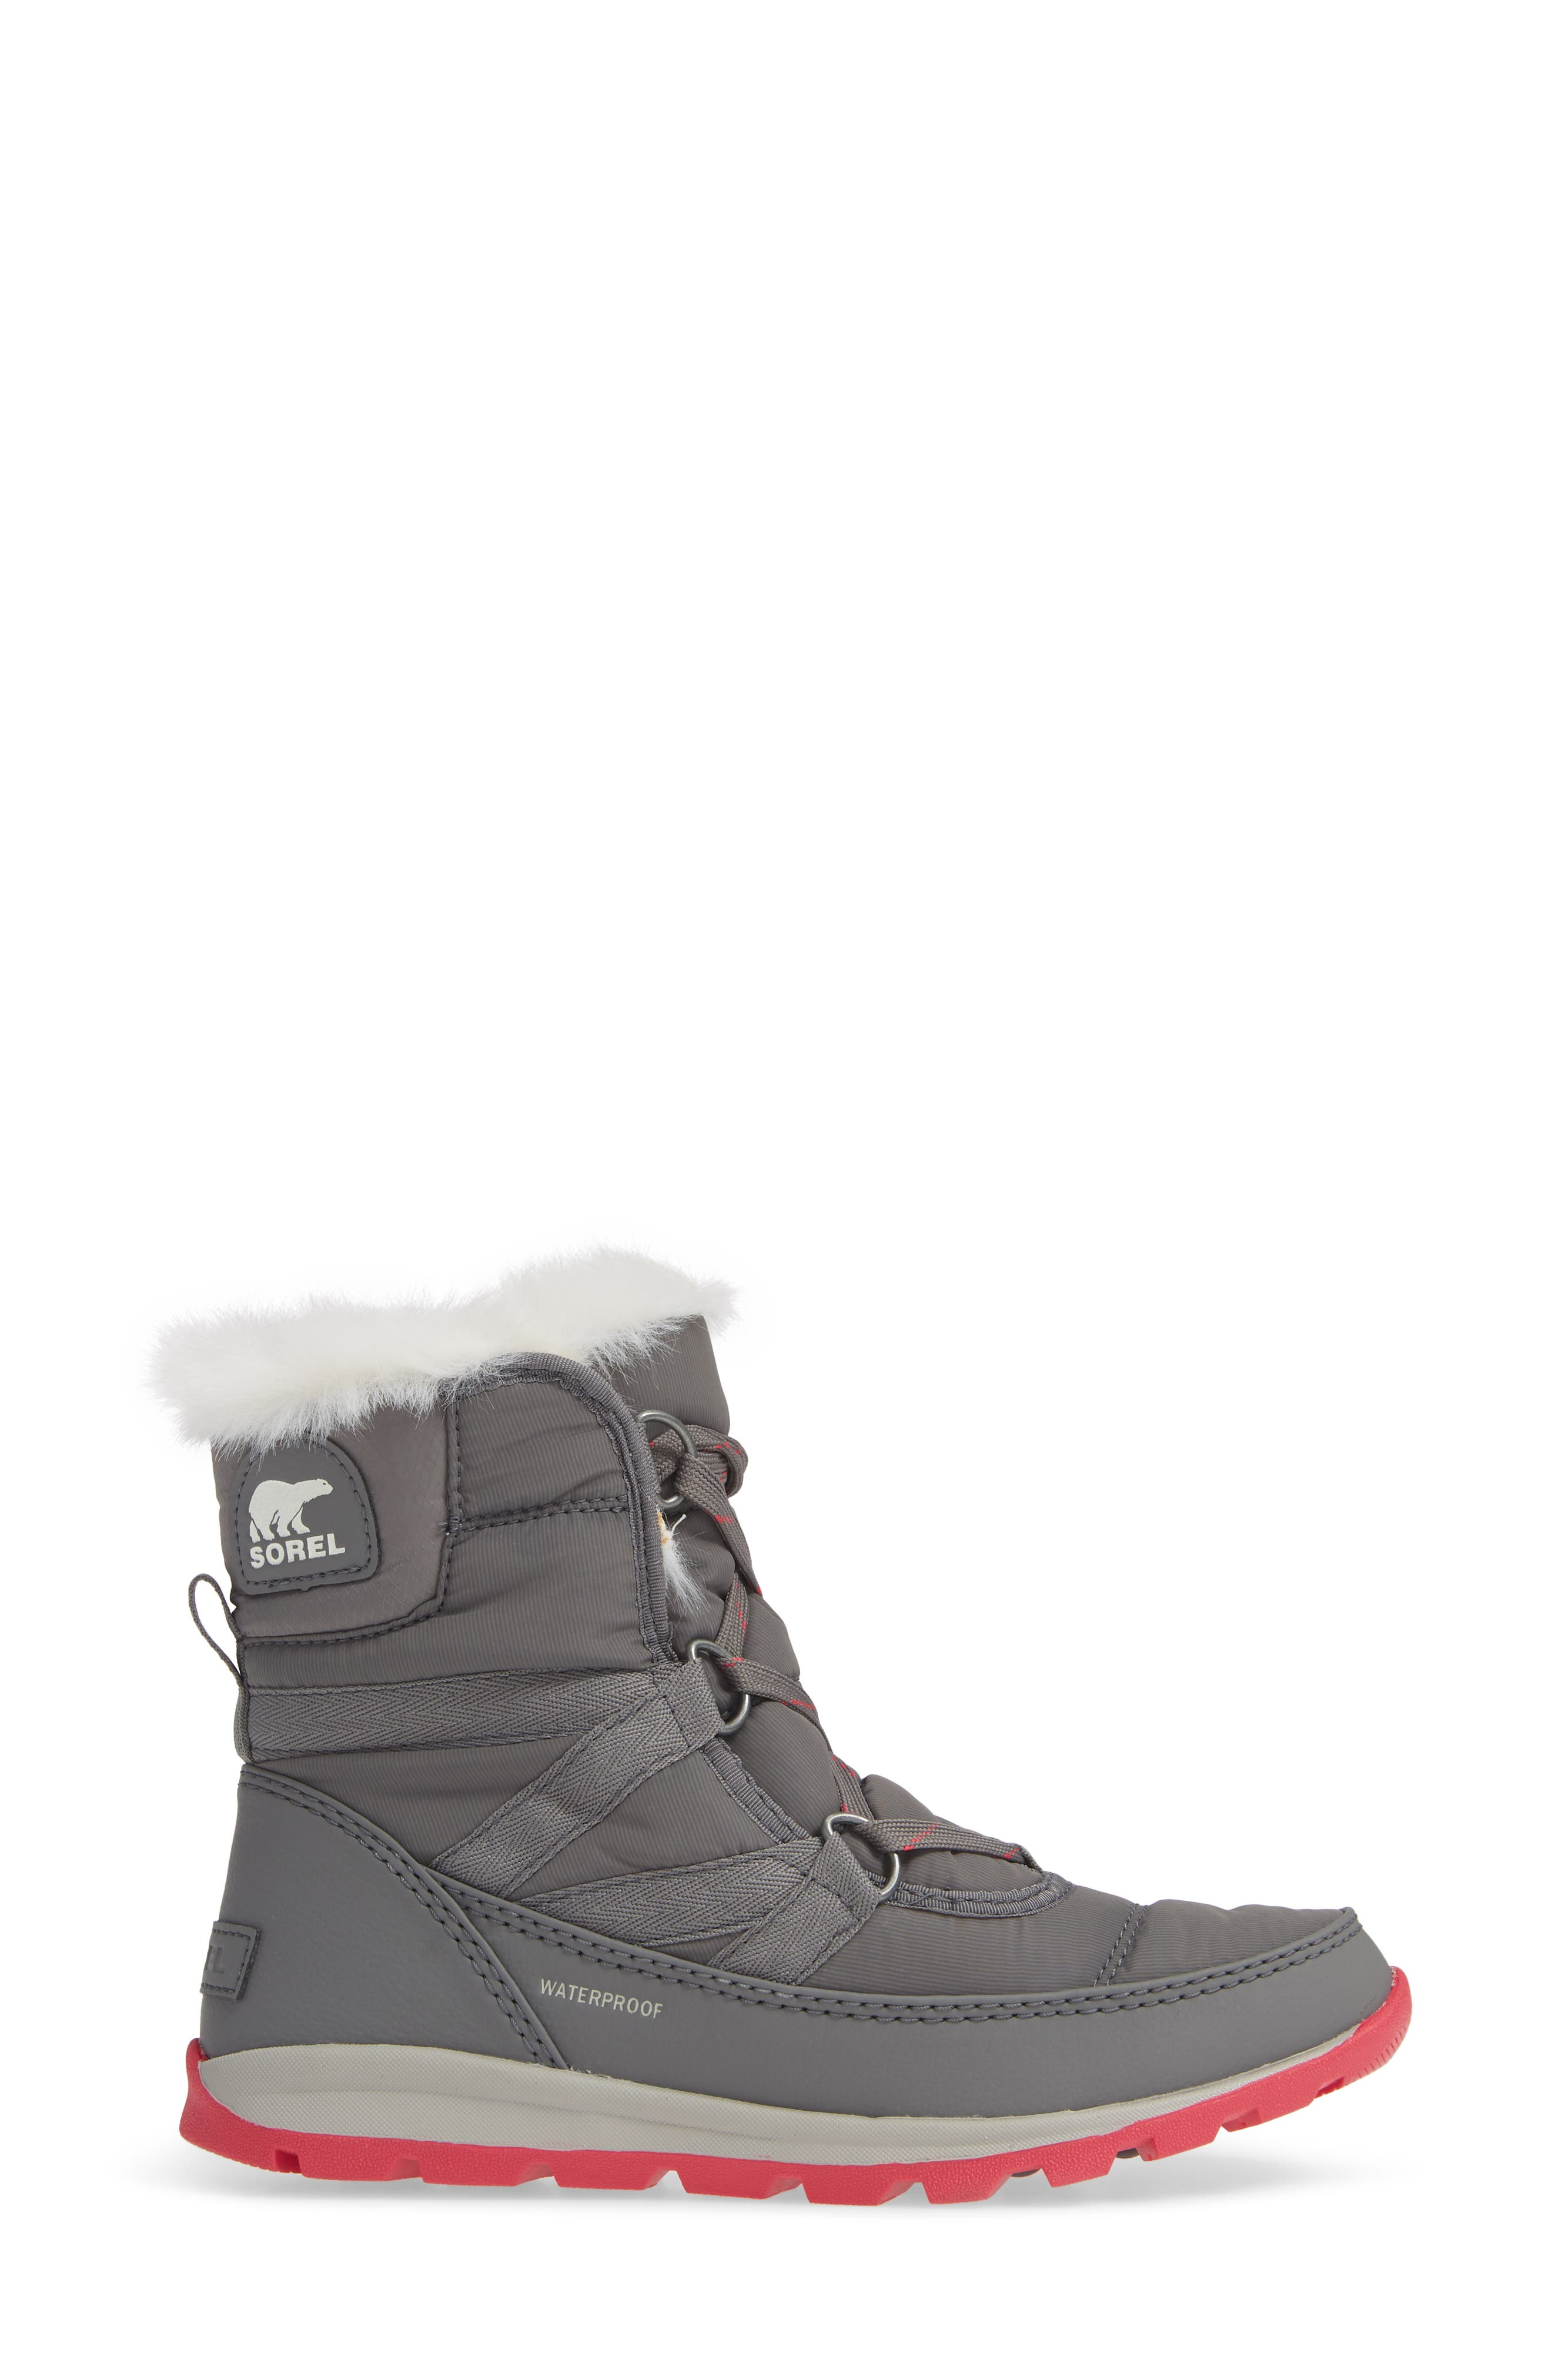 Whitney Snow Bootie,                             Alternate thumbnail 3, color,                             053